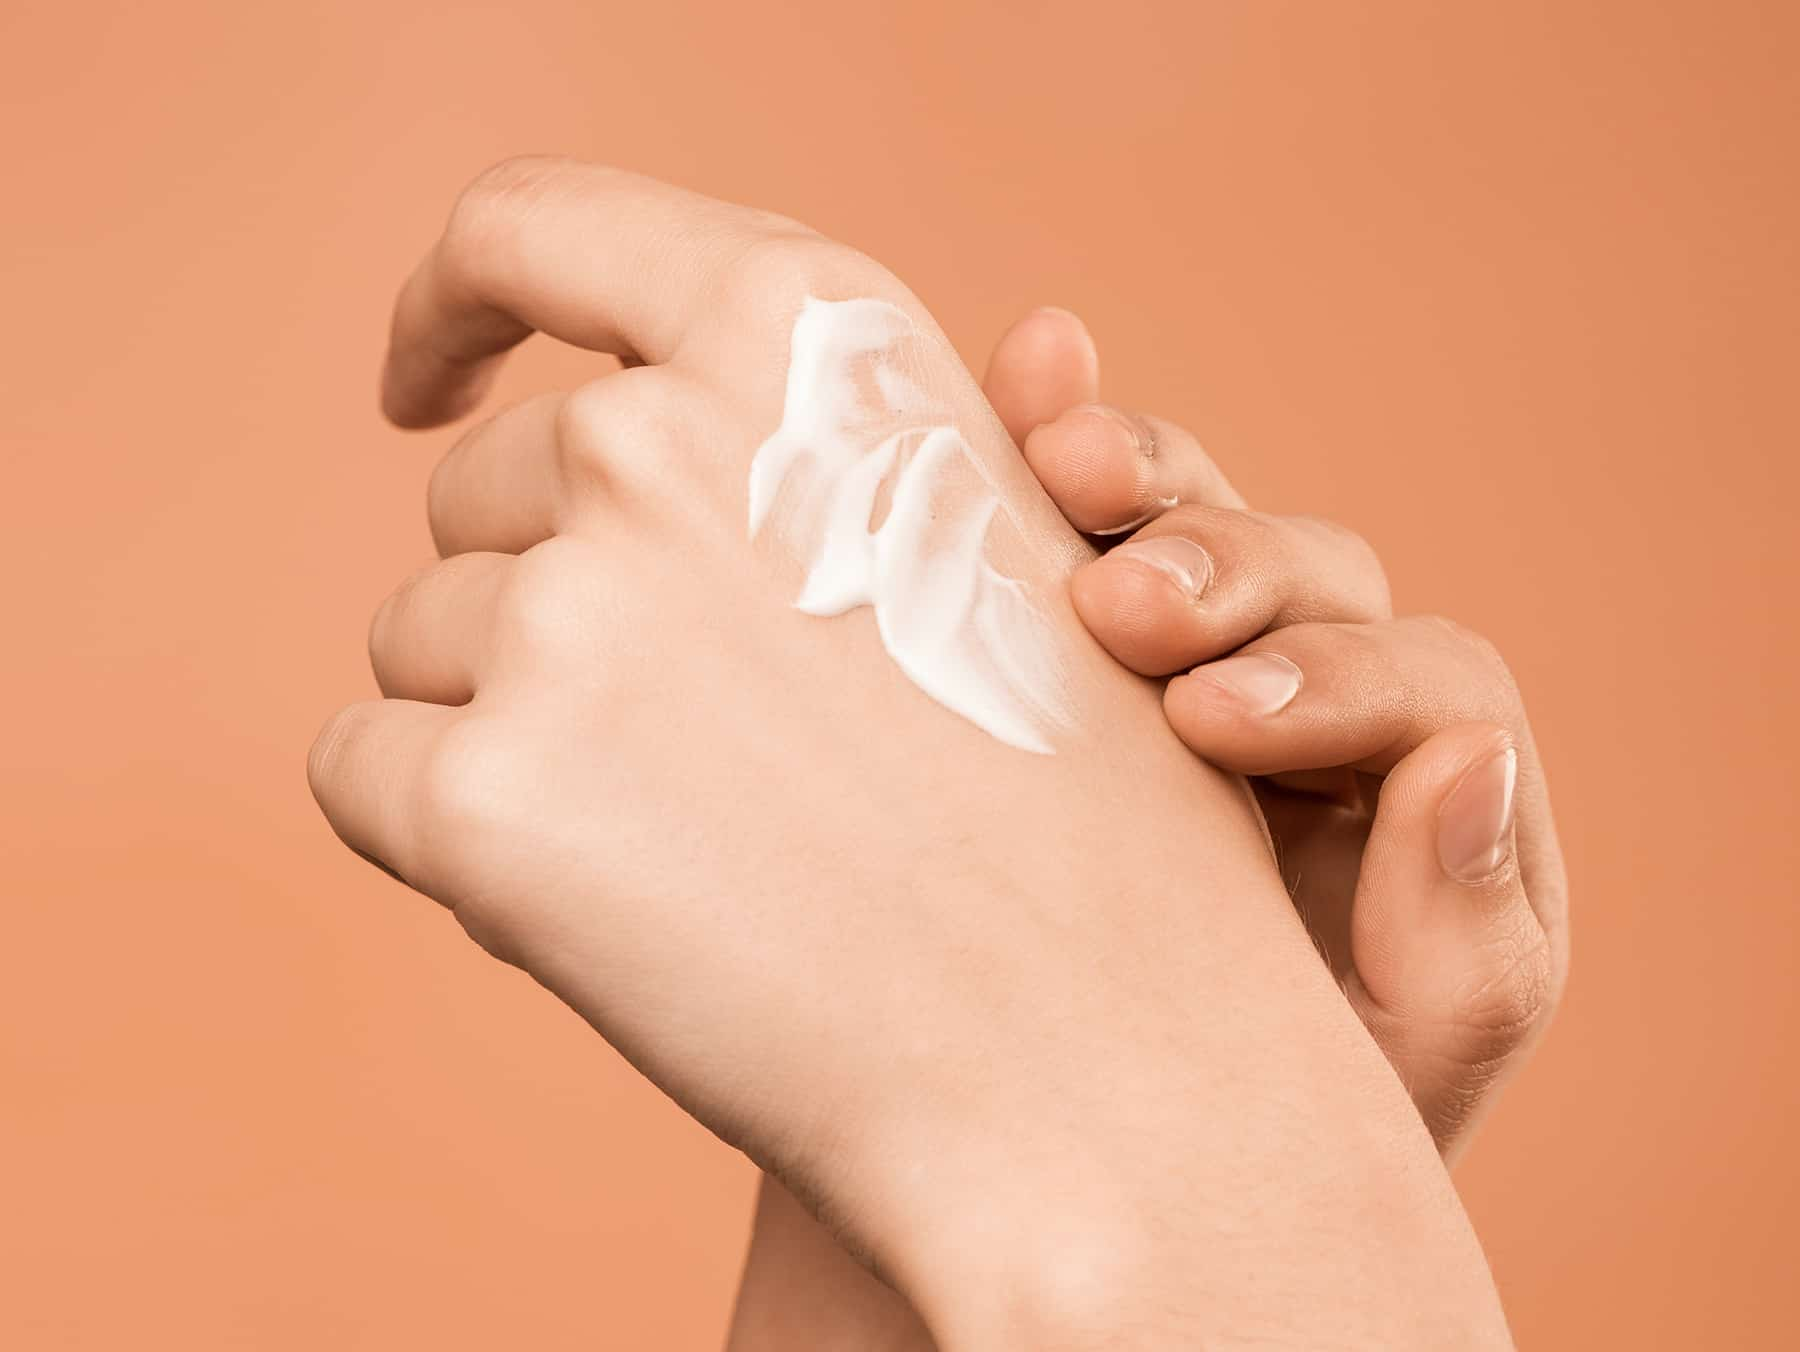 cbd skin cream being rubbed into a hand